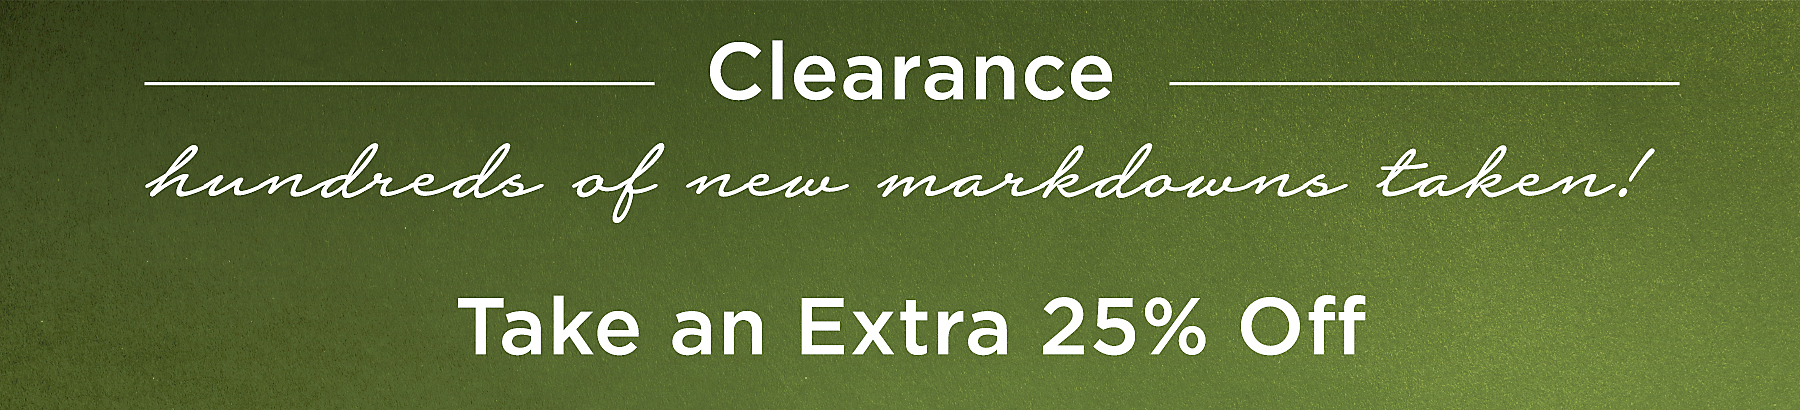 Take An Additional 25% Off Green Tag Clearance